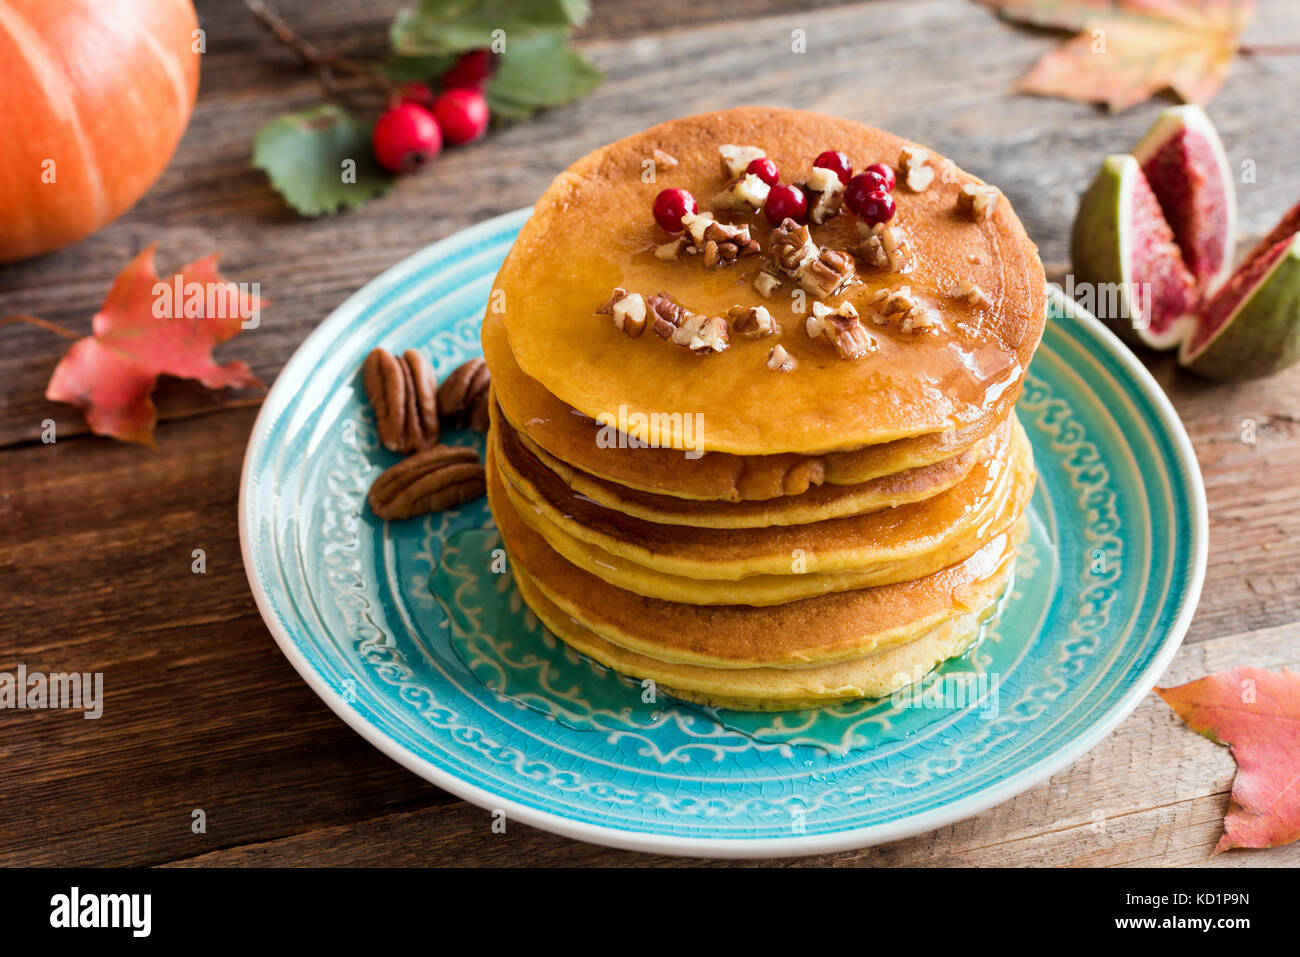 Pumpkin pancakes with pecan nuts, red berries and honey on a blue turquoise plate. Seasonal autumn food Stock Photo